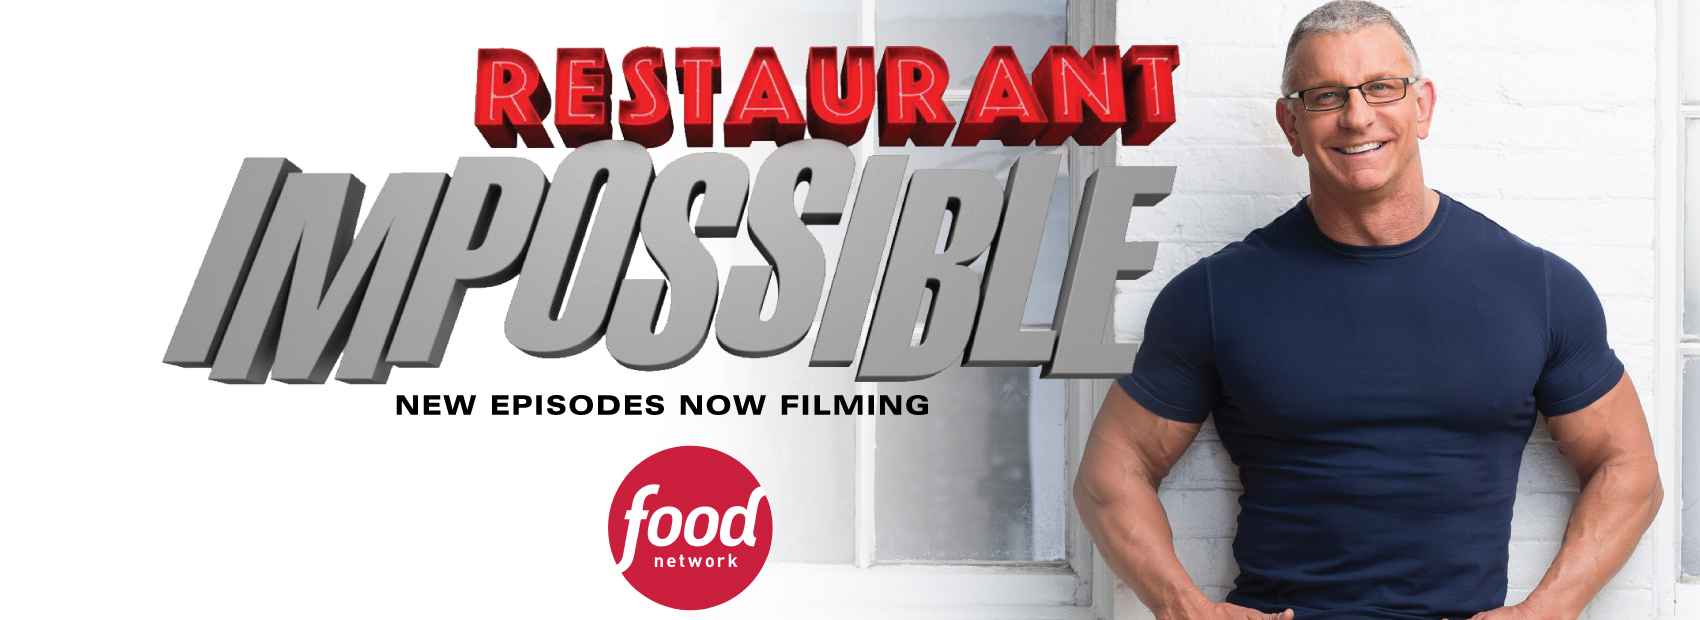 Restaurant: Impossible Banner